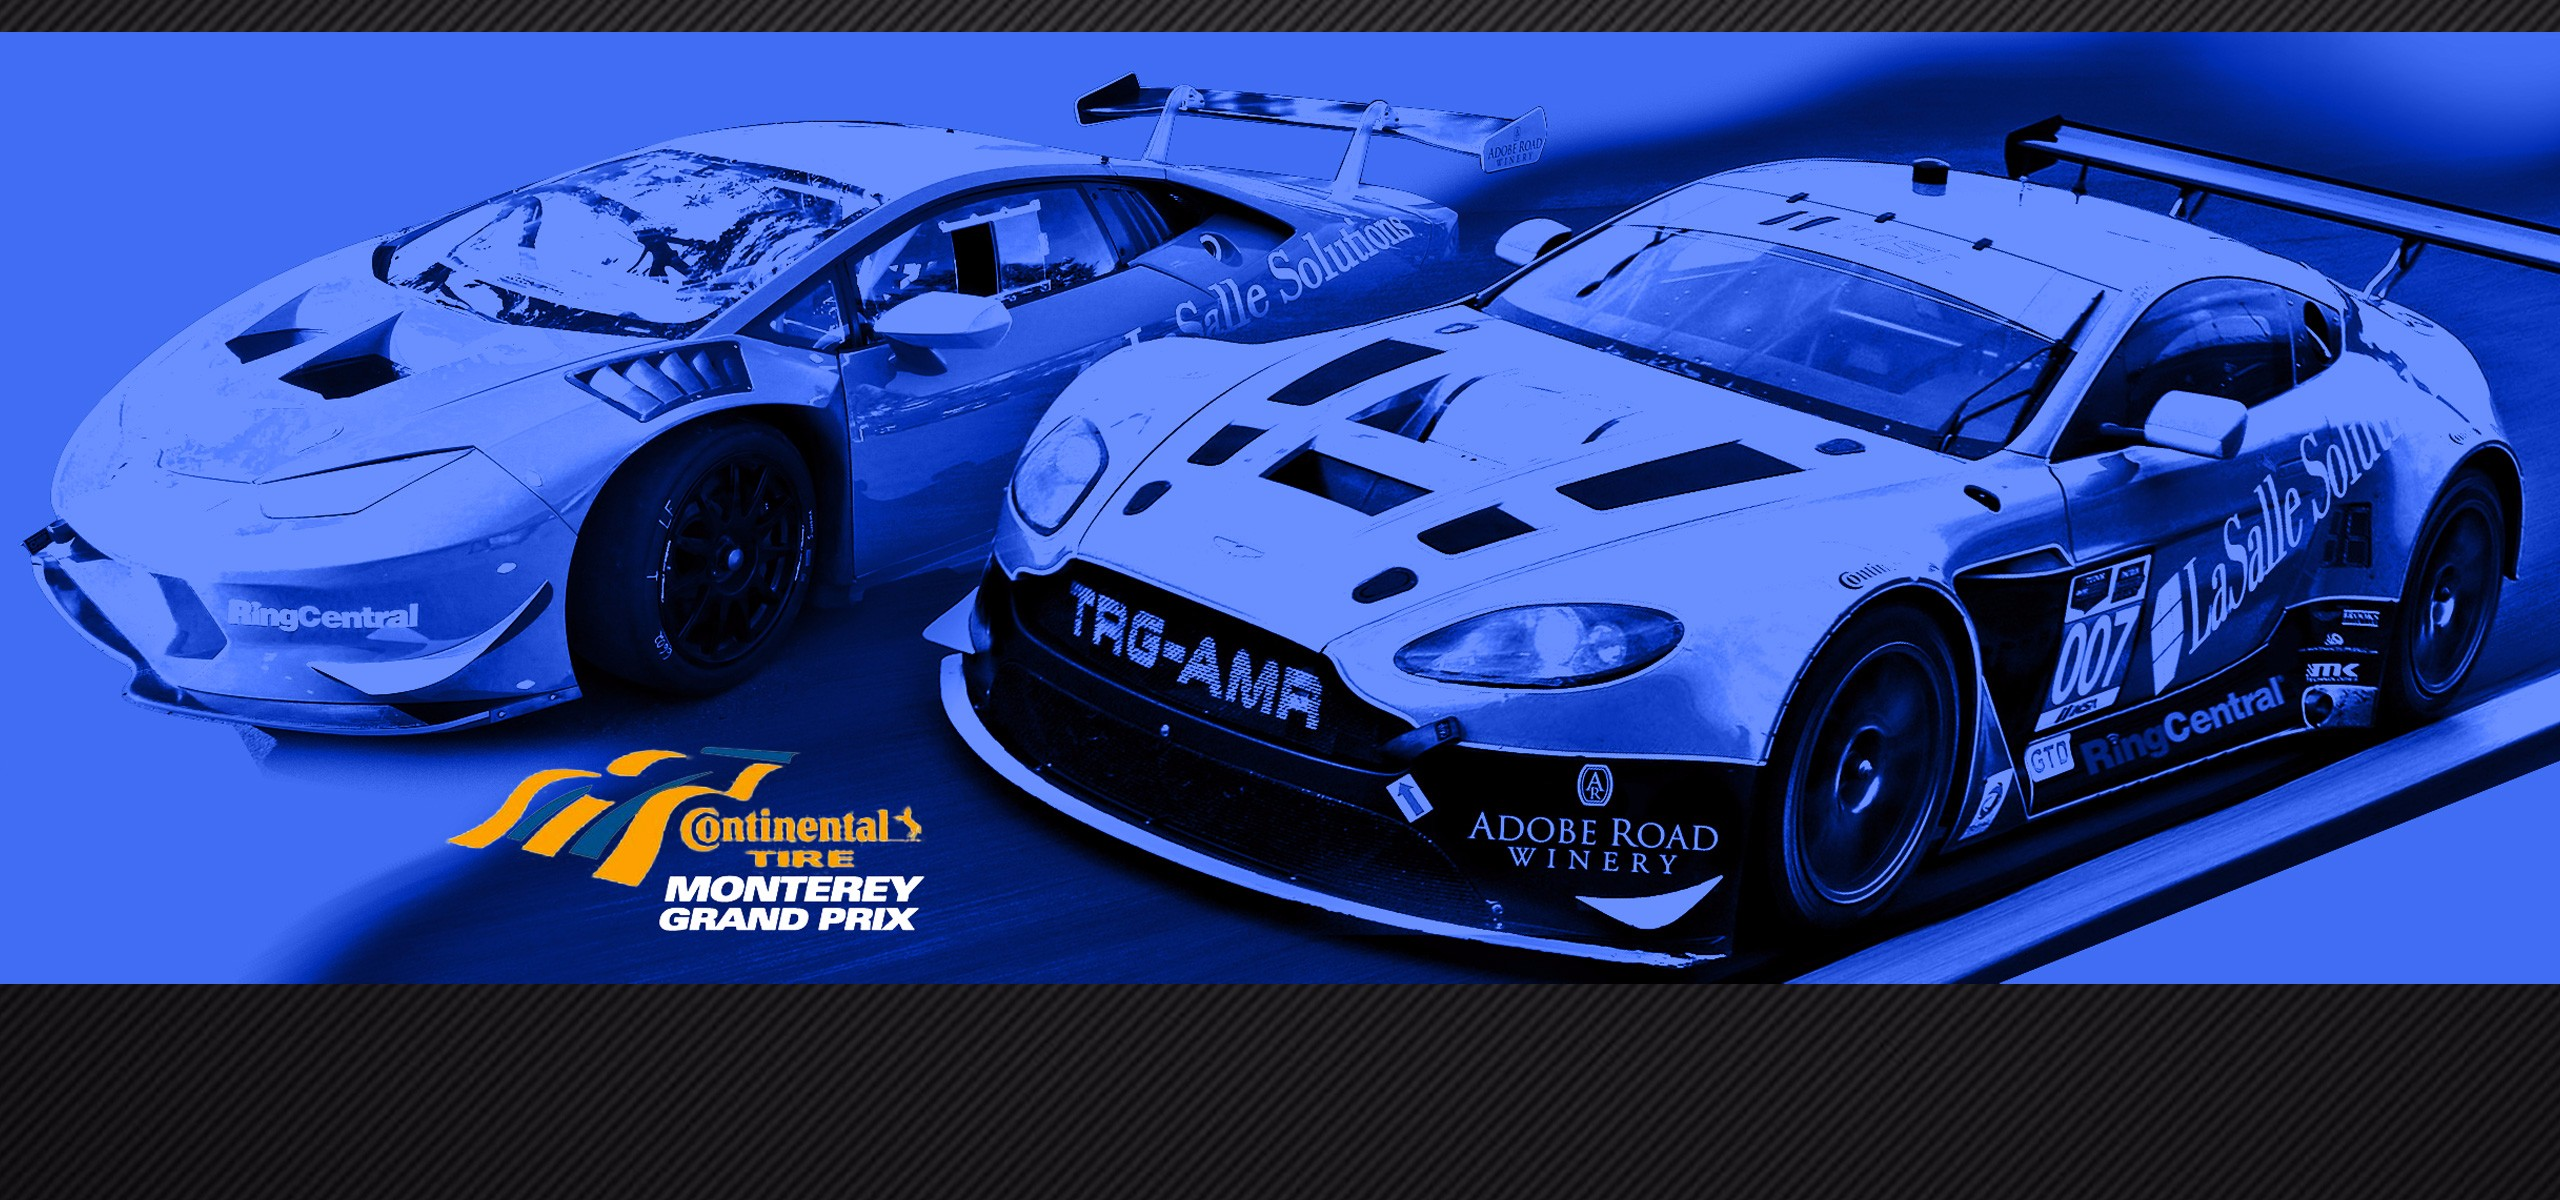 The Racers Group Looks to Conquer the Famed Laguna Seca Corkscrew with Both Aston Martin and Lamborghini